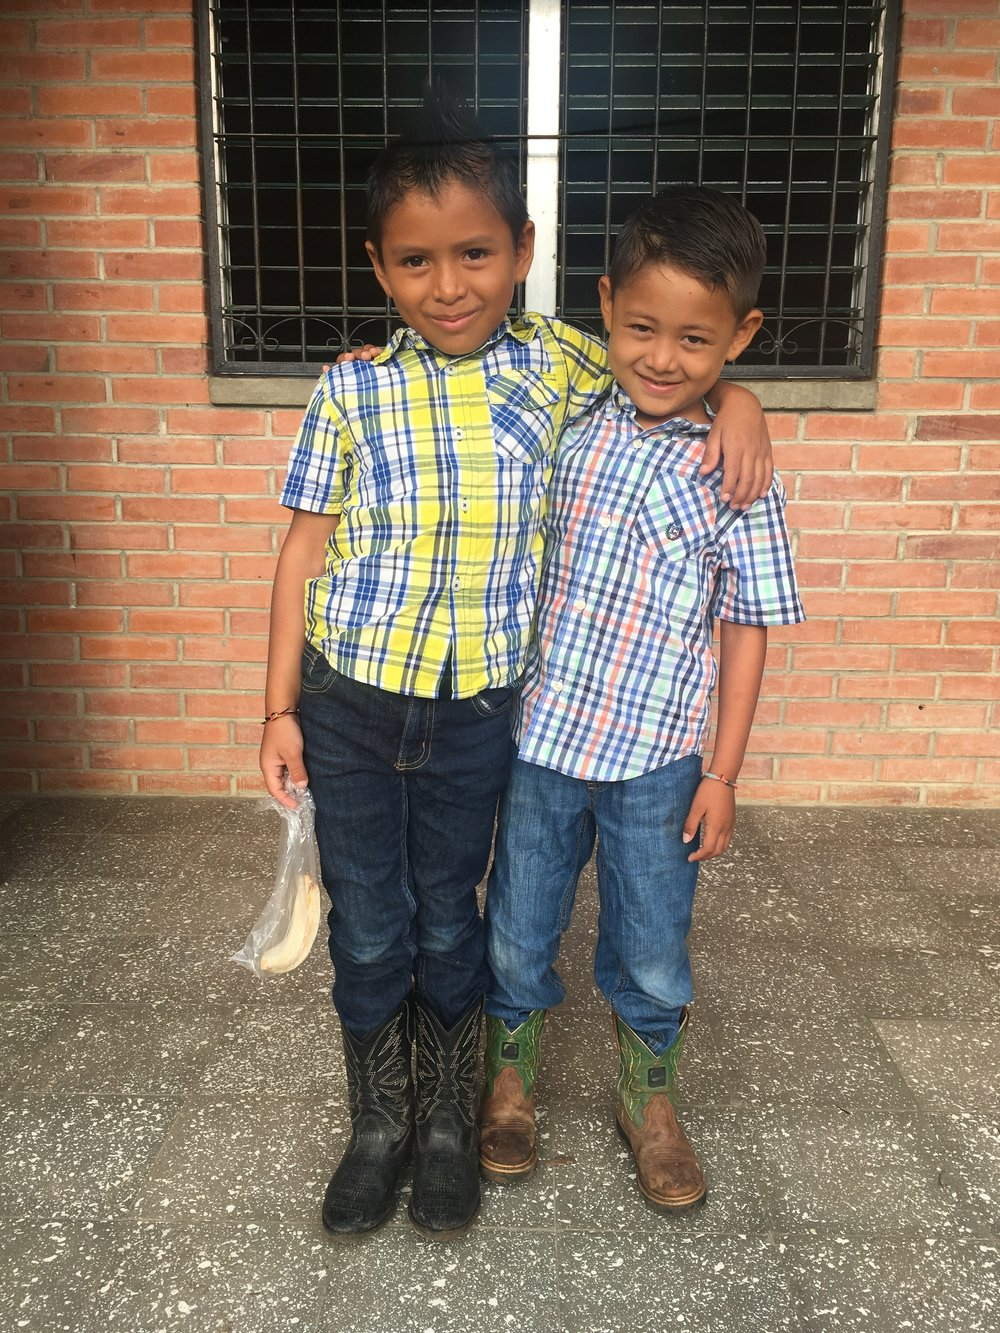 Brothers in Boots!